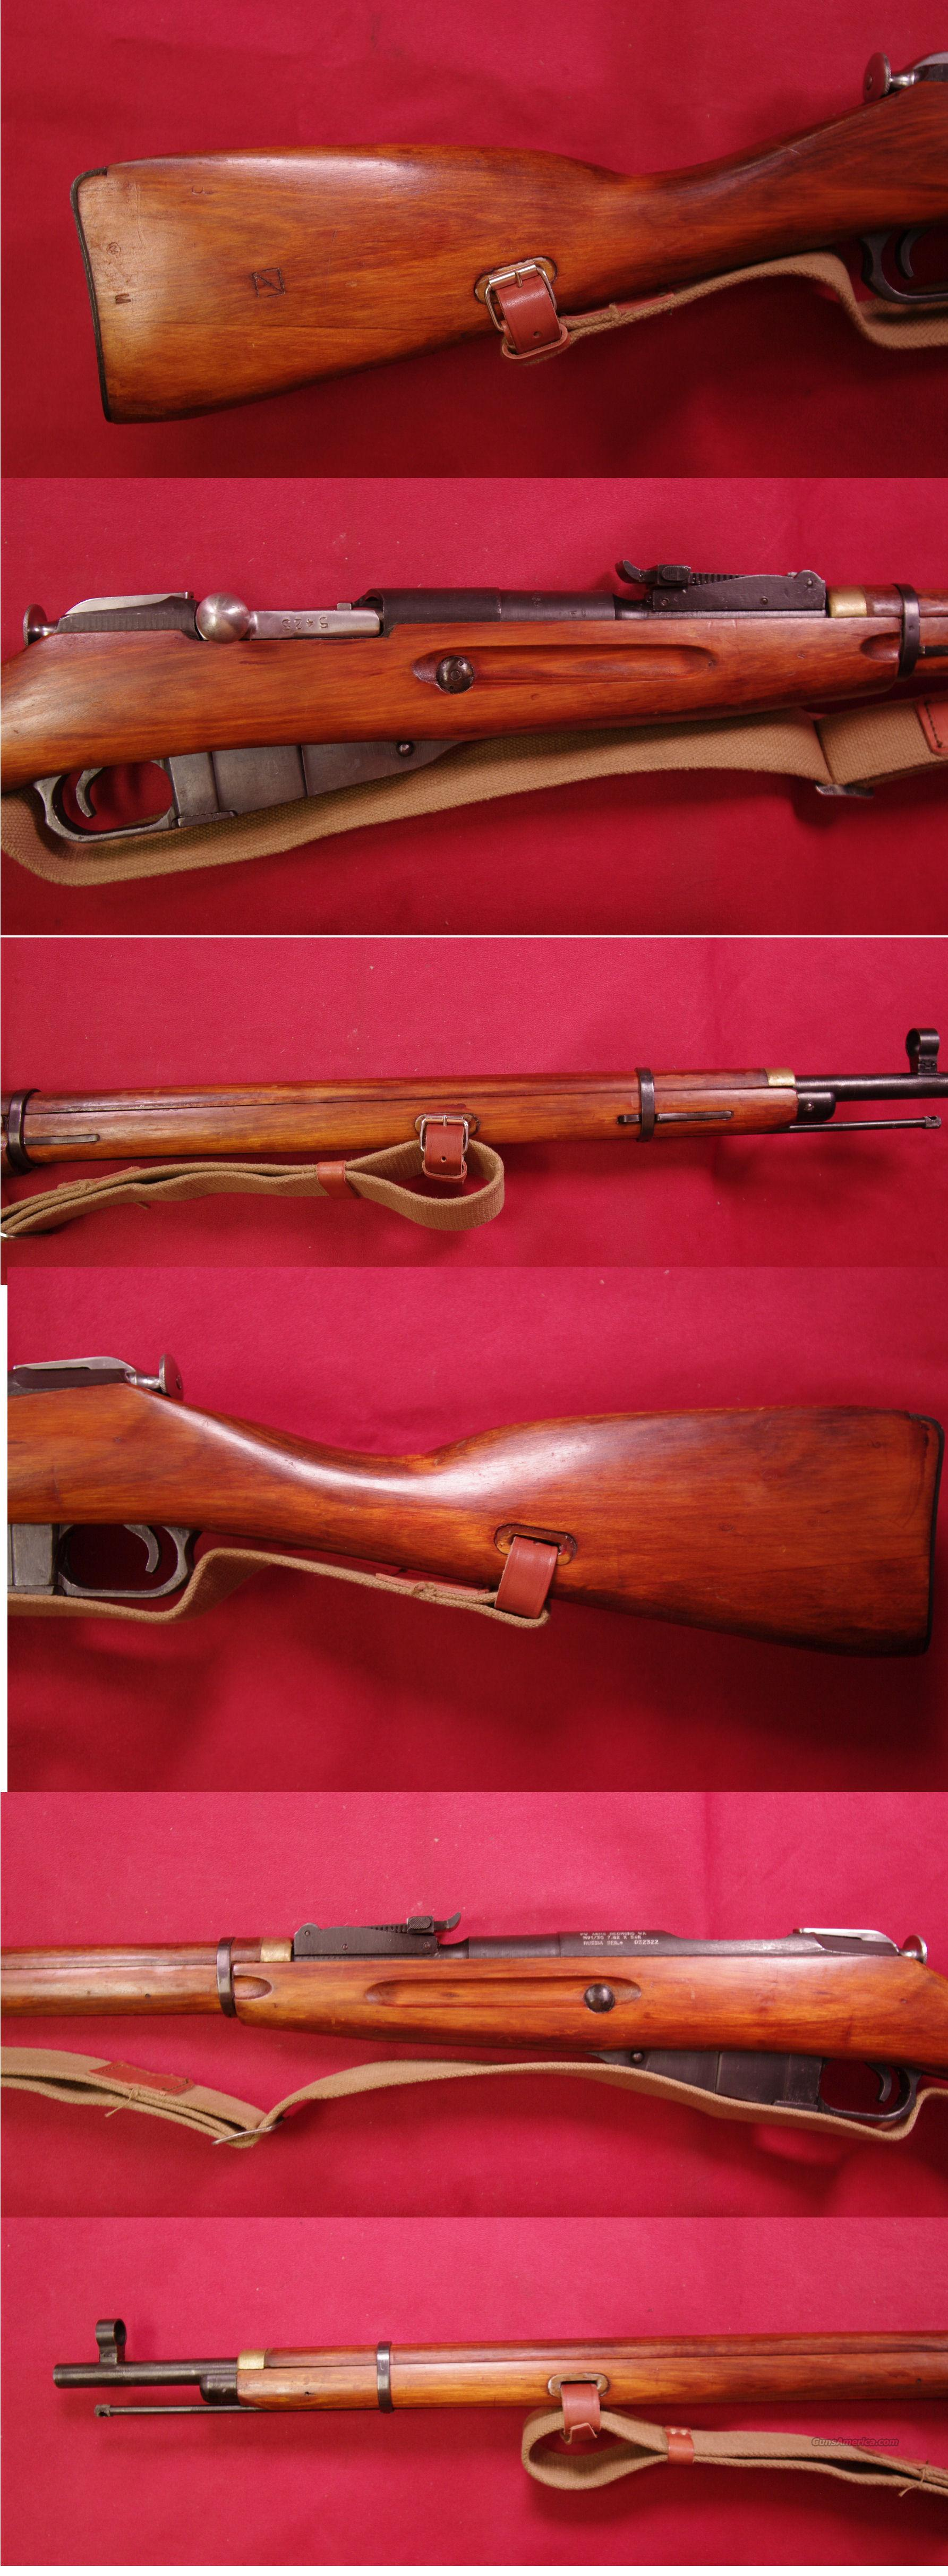 Mosin-Nagant 7.62x54mm  Guns > Rifles > Mosin-Nagant Rifles/Carbines